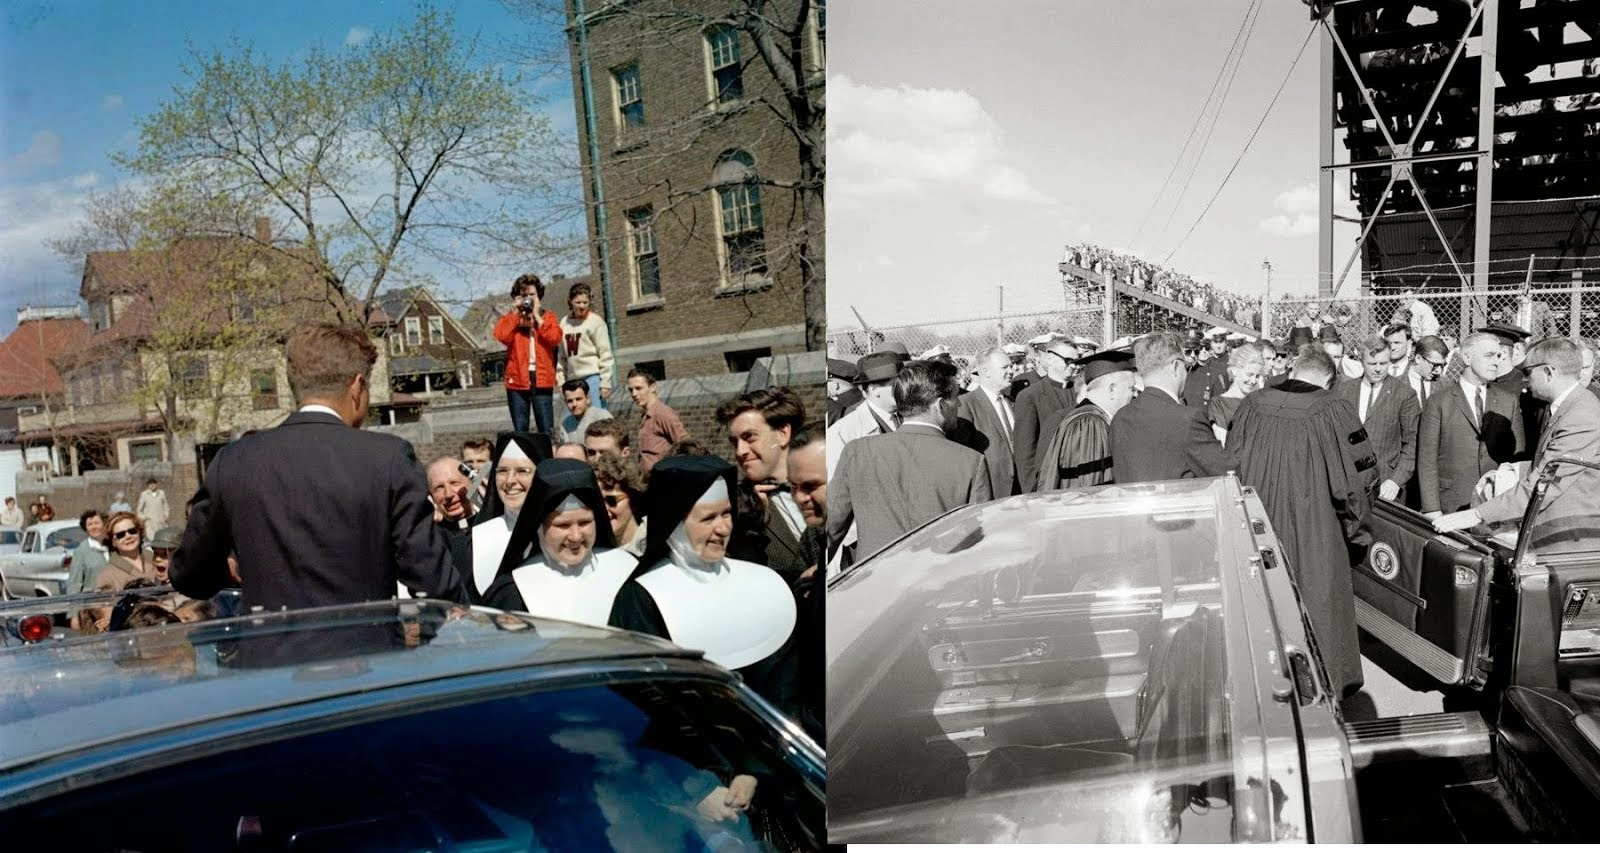 JFK bubbletop Boston, MA 4/20/63